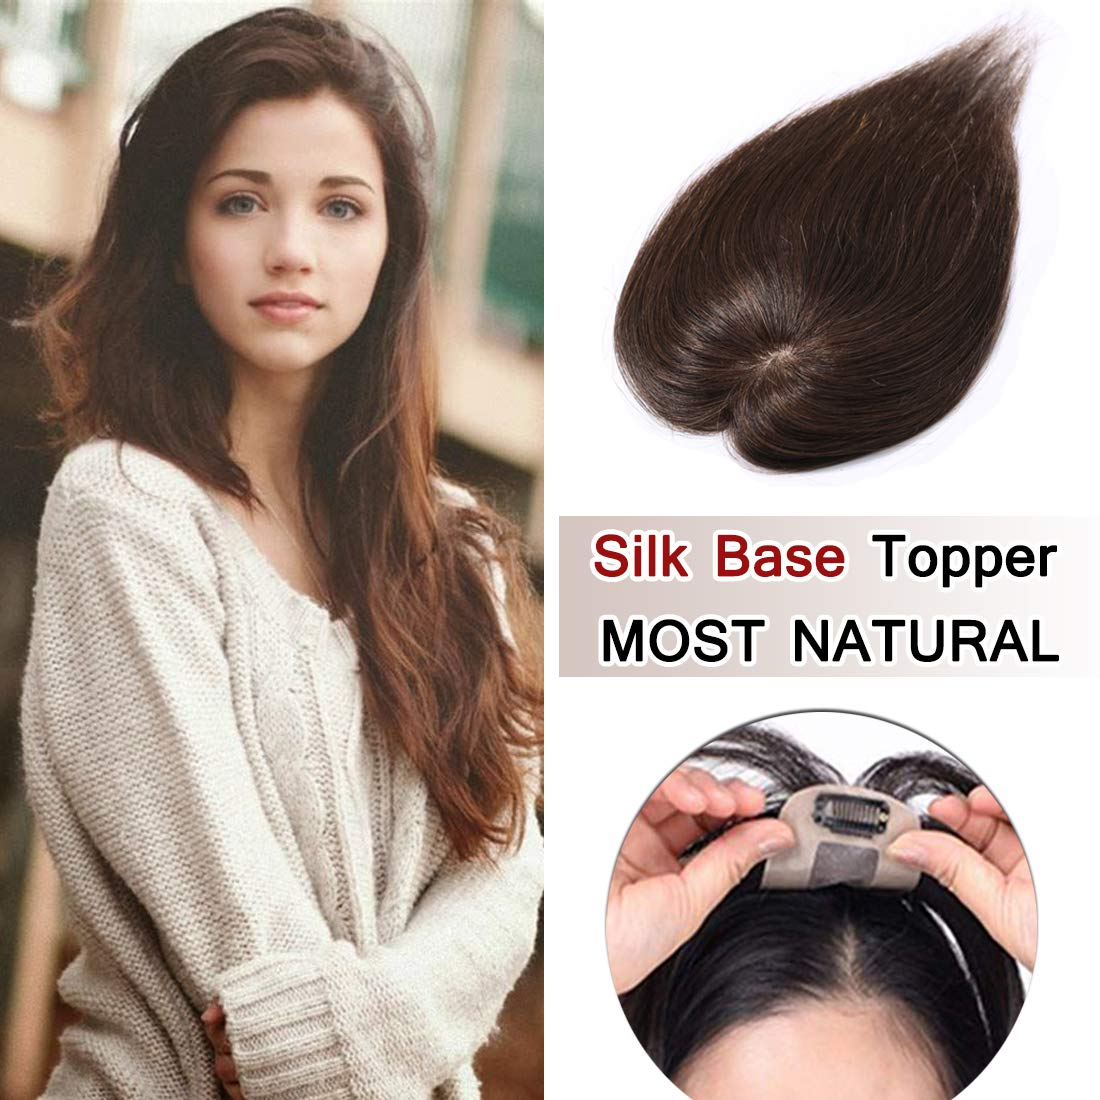 SEGO 100% Density Top Hair Pieces Silk Base Crown Topper Human Hair Clip in Hair Toppers Top Hairpieces for Women with Thinning Hair Gray Hair/Hair Loss#04 Brown 10 inches 20g